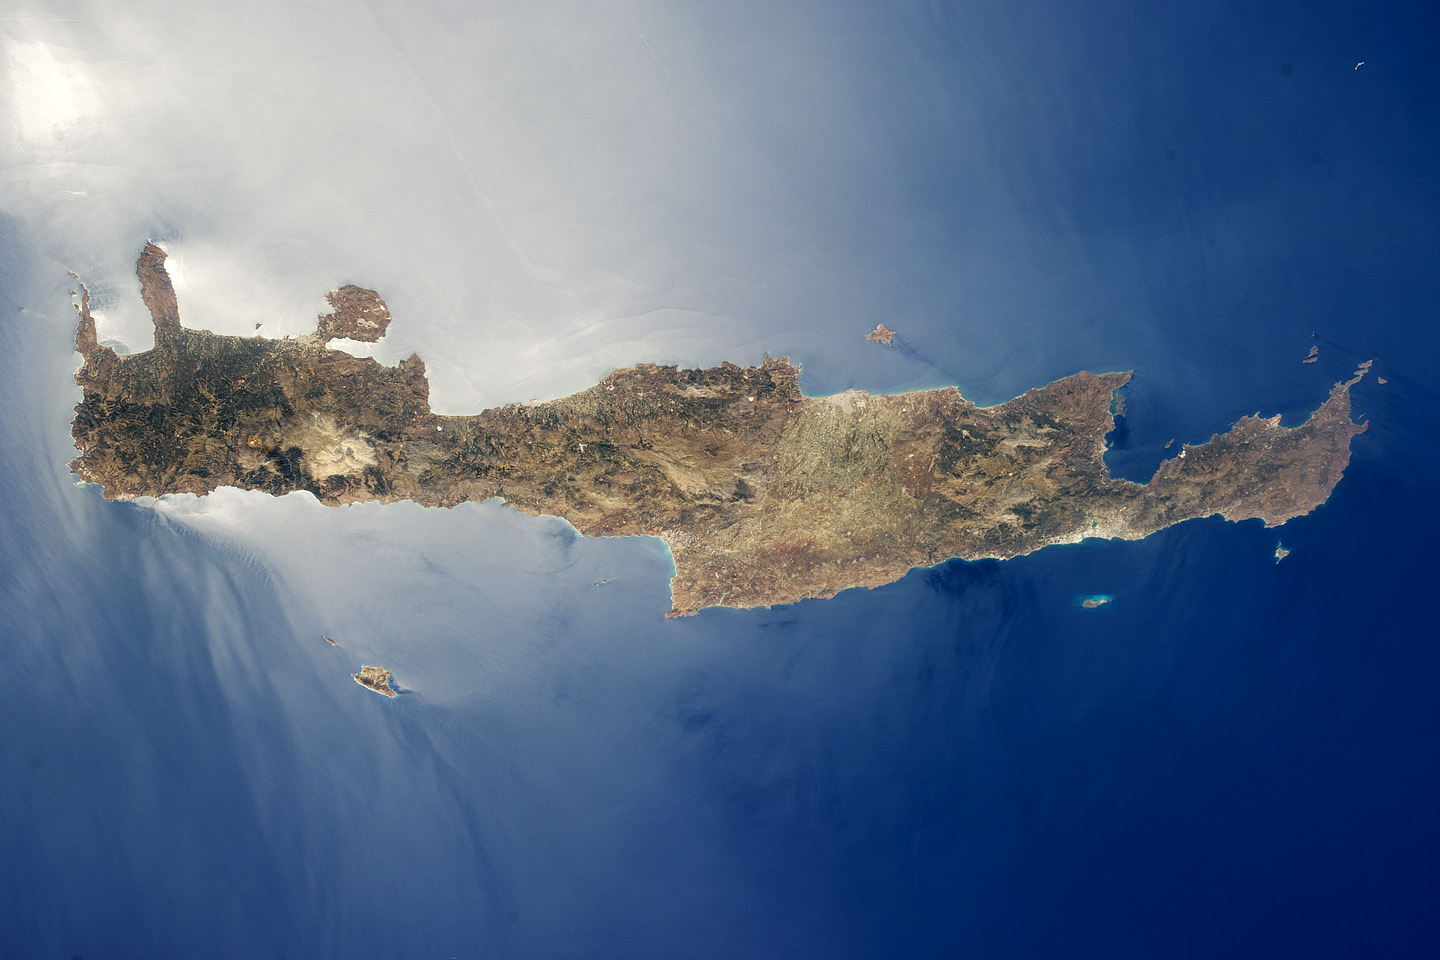 Crete Island Greece  City pictures : GeoGarage: Image of the week : Island of Crete, Greece